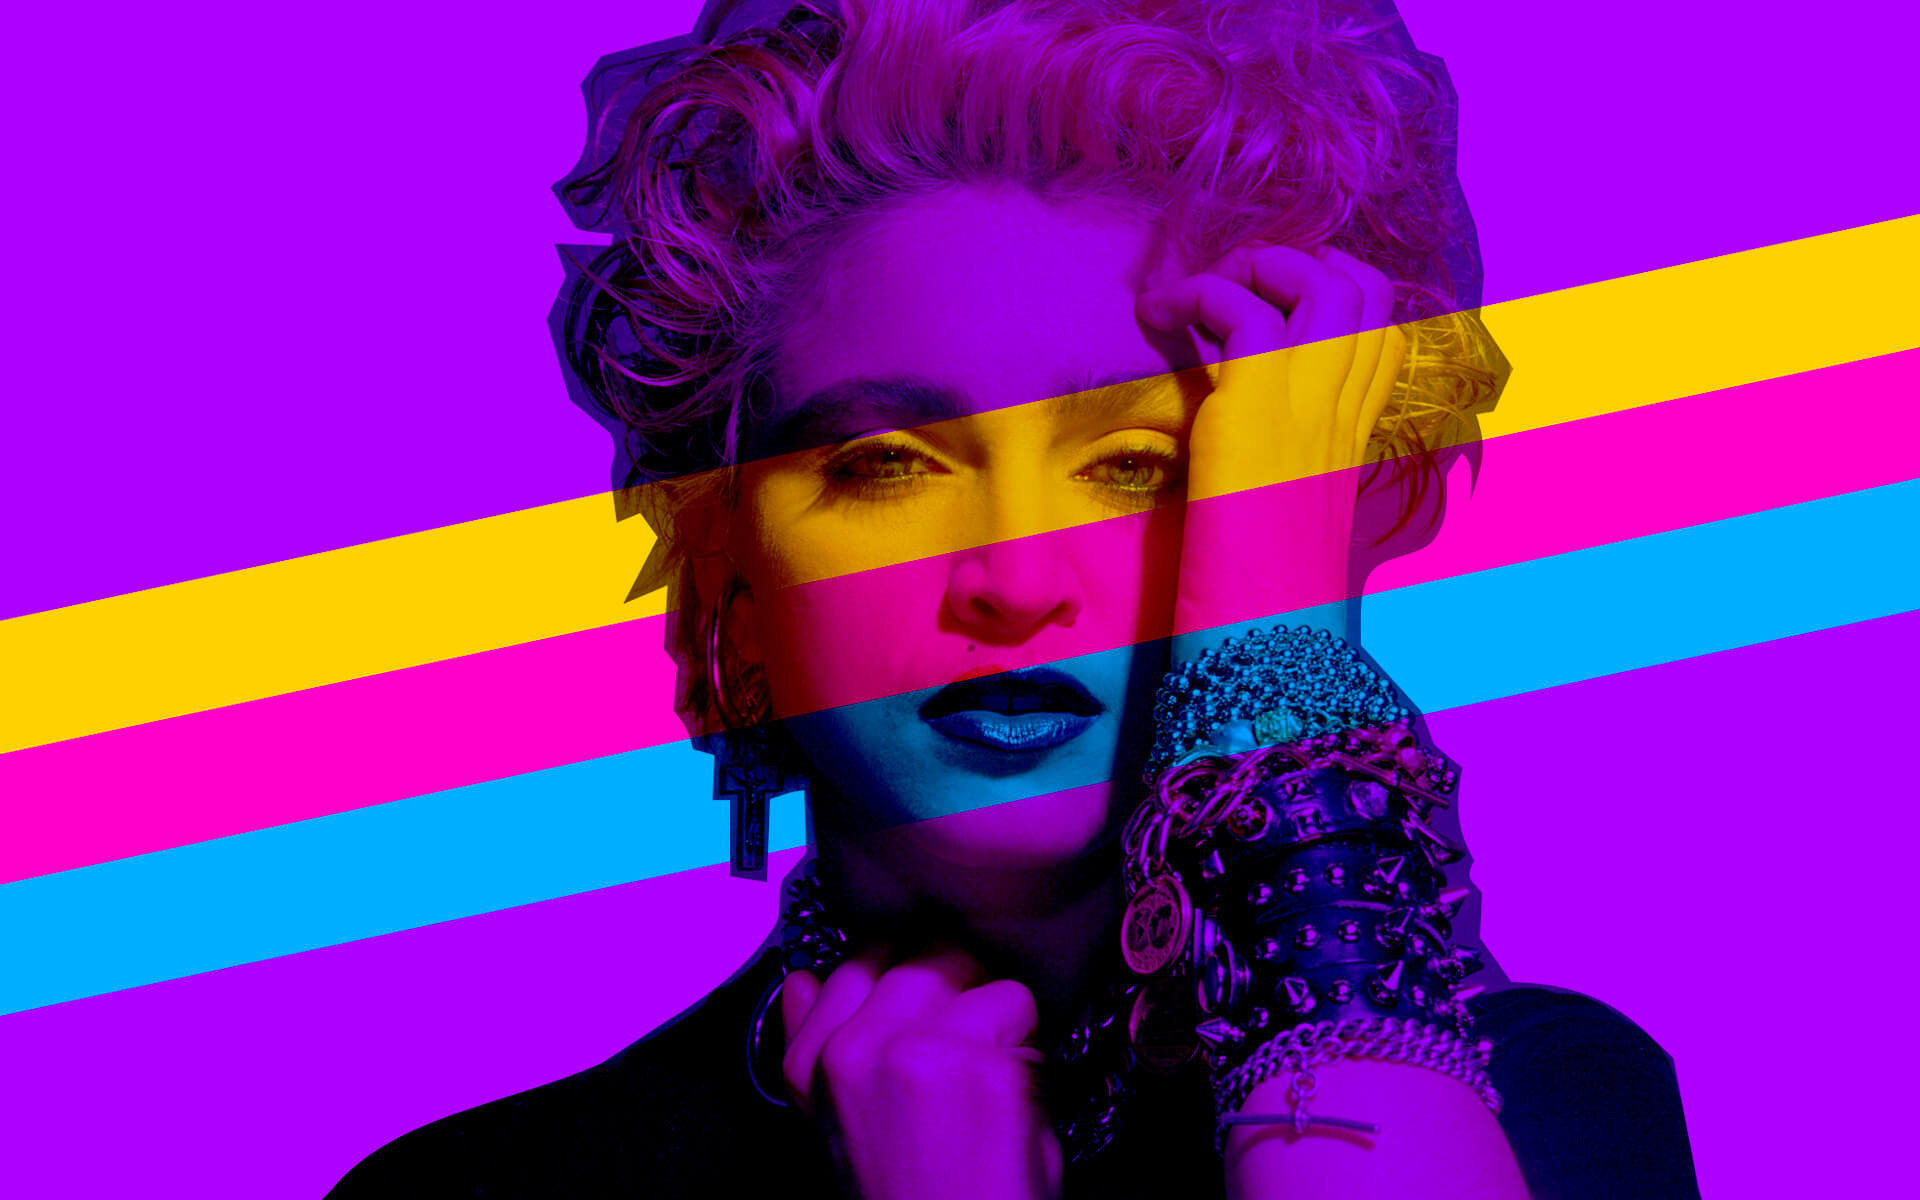 A very retro '80s design featuring a young Madonna.